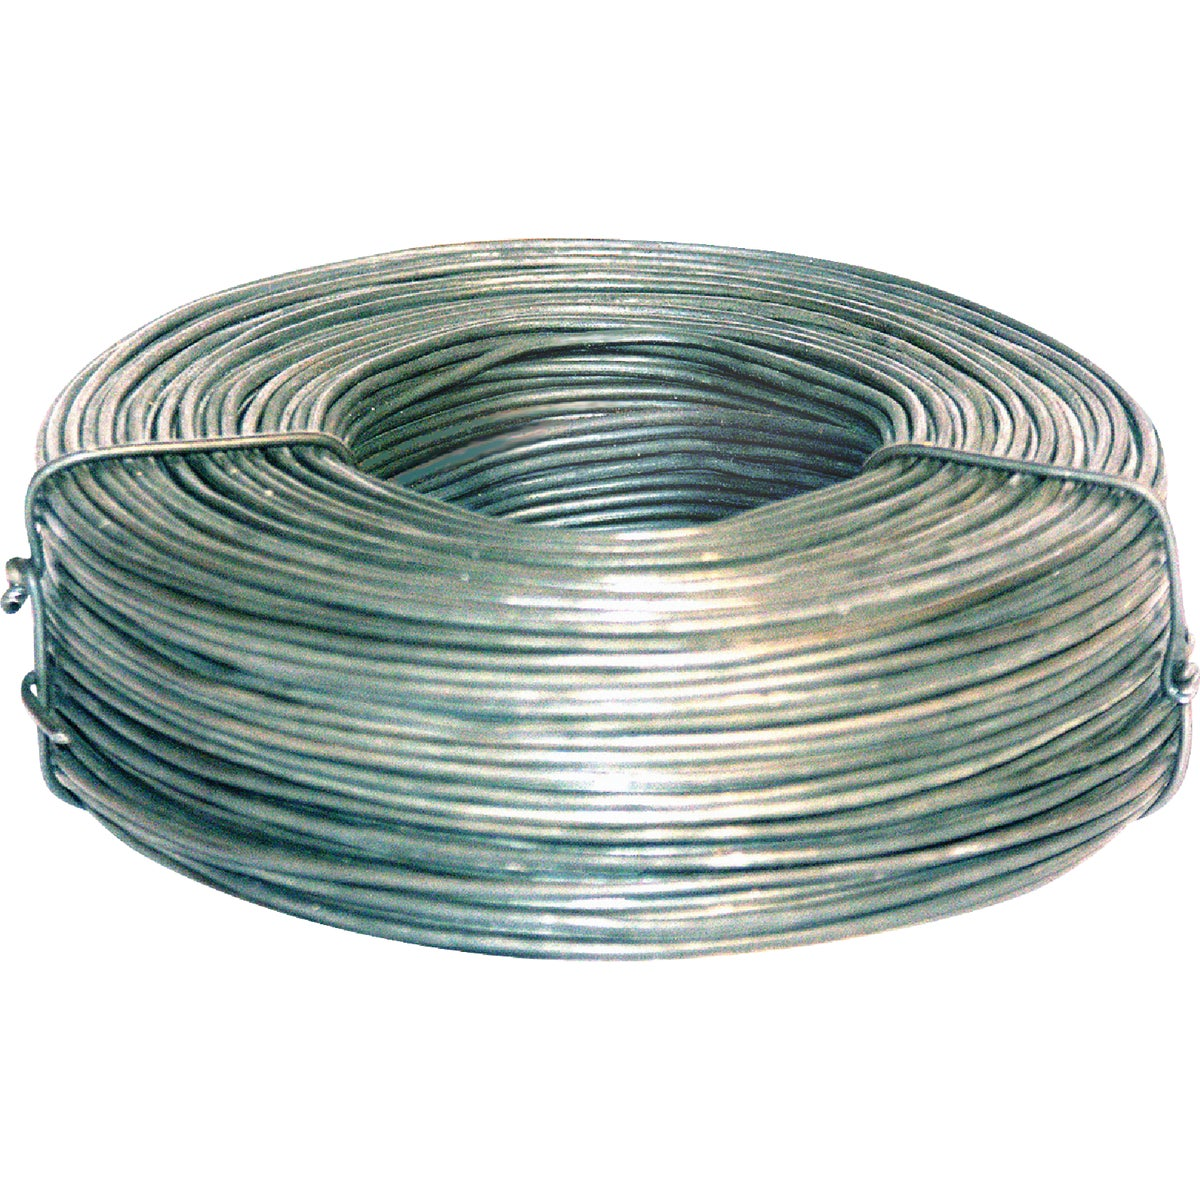 14GA 10# GLV SMOOTH WIRE - SWG1410 by Primesource